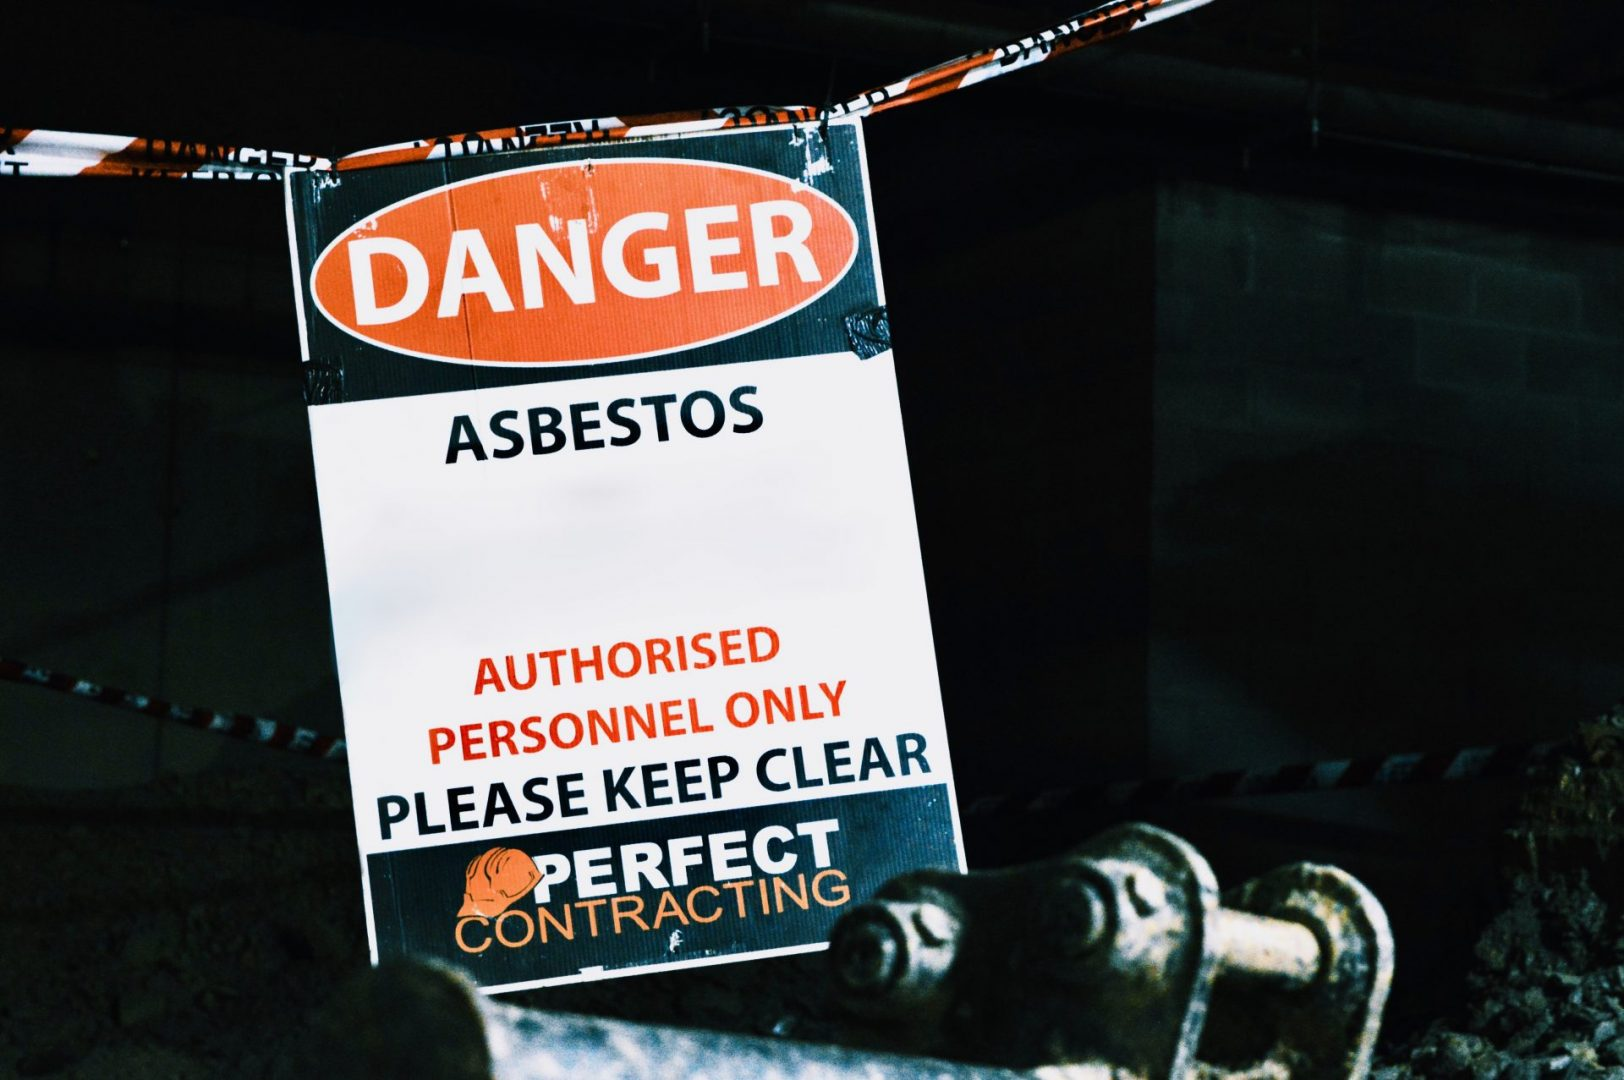 Licensed asbestos removal company - Perfect Contracting